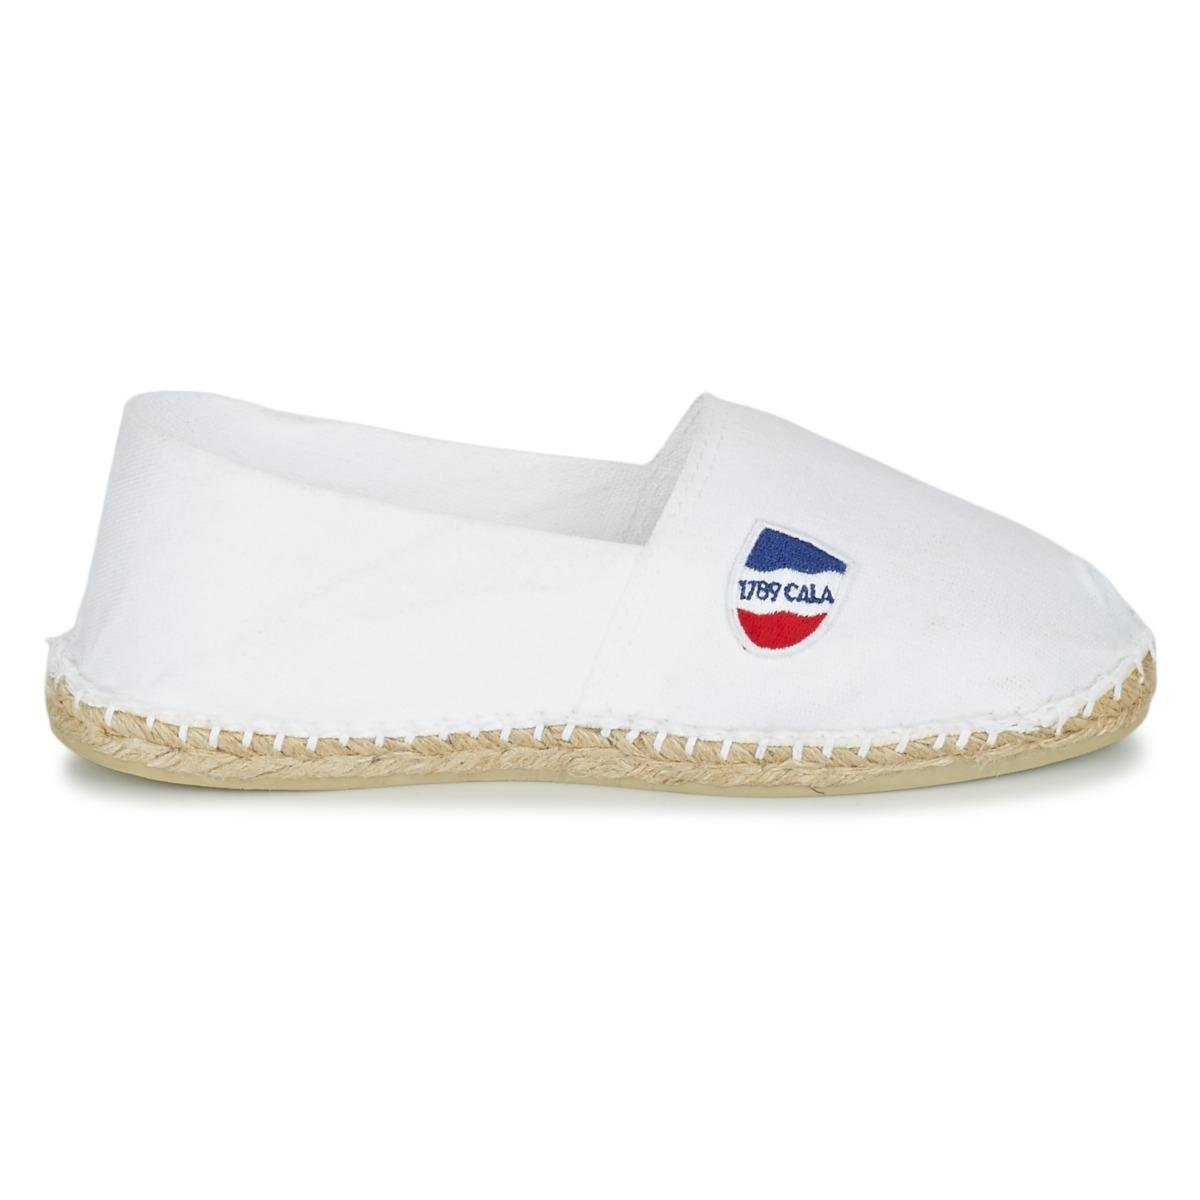 1789 Cala Unie Blanc Men's Espadrilles / Casual Shoes In White for Men - Save 18%